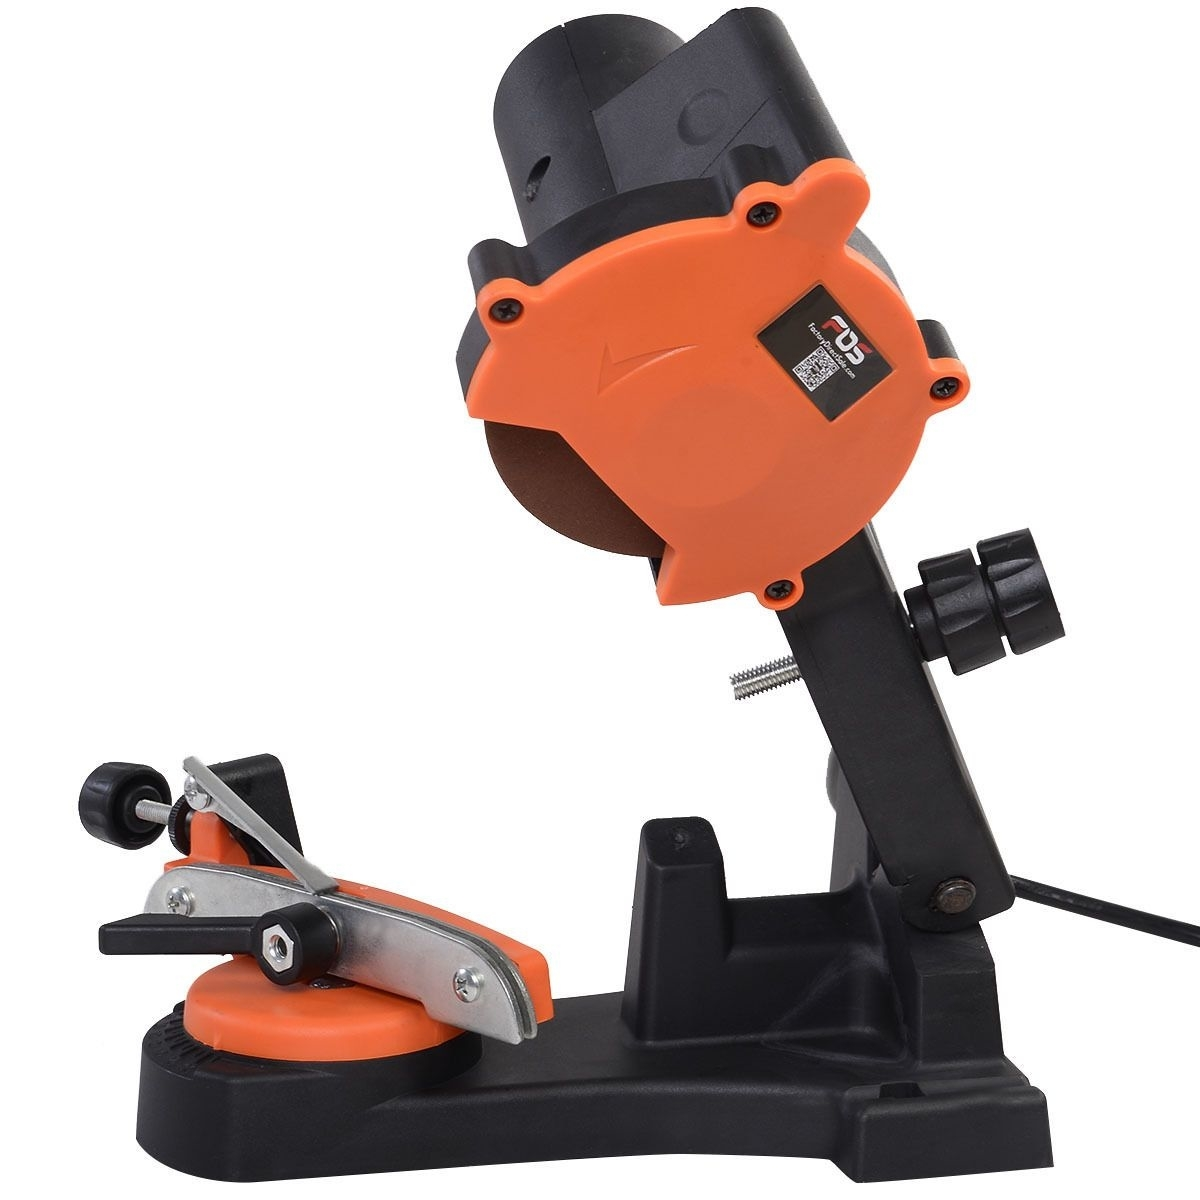 New Electric Chainsaw Chain Saw Sharpener Grinder 4200Rpm Wall Mount Tool 59f3f50cc98fc43ff0388c1e